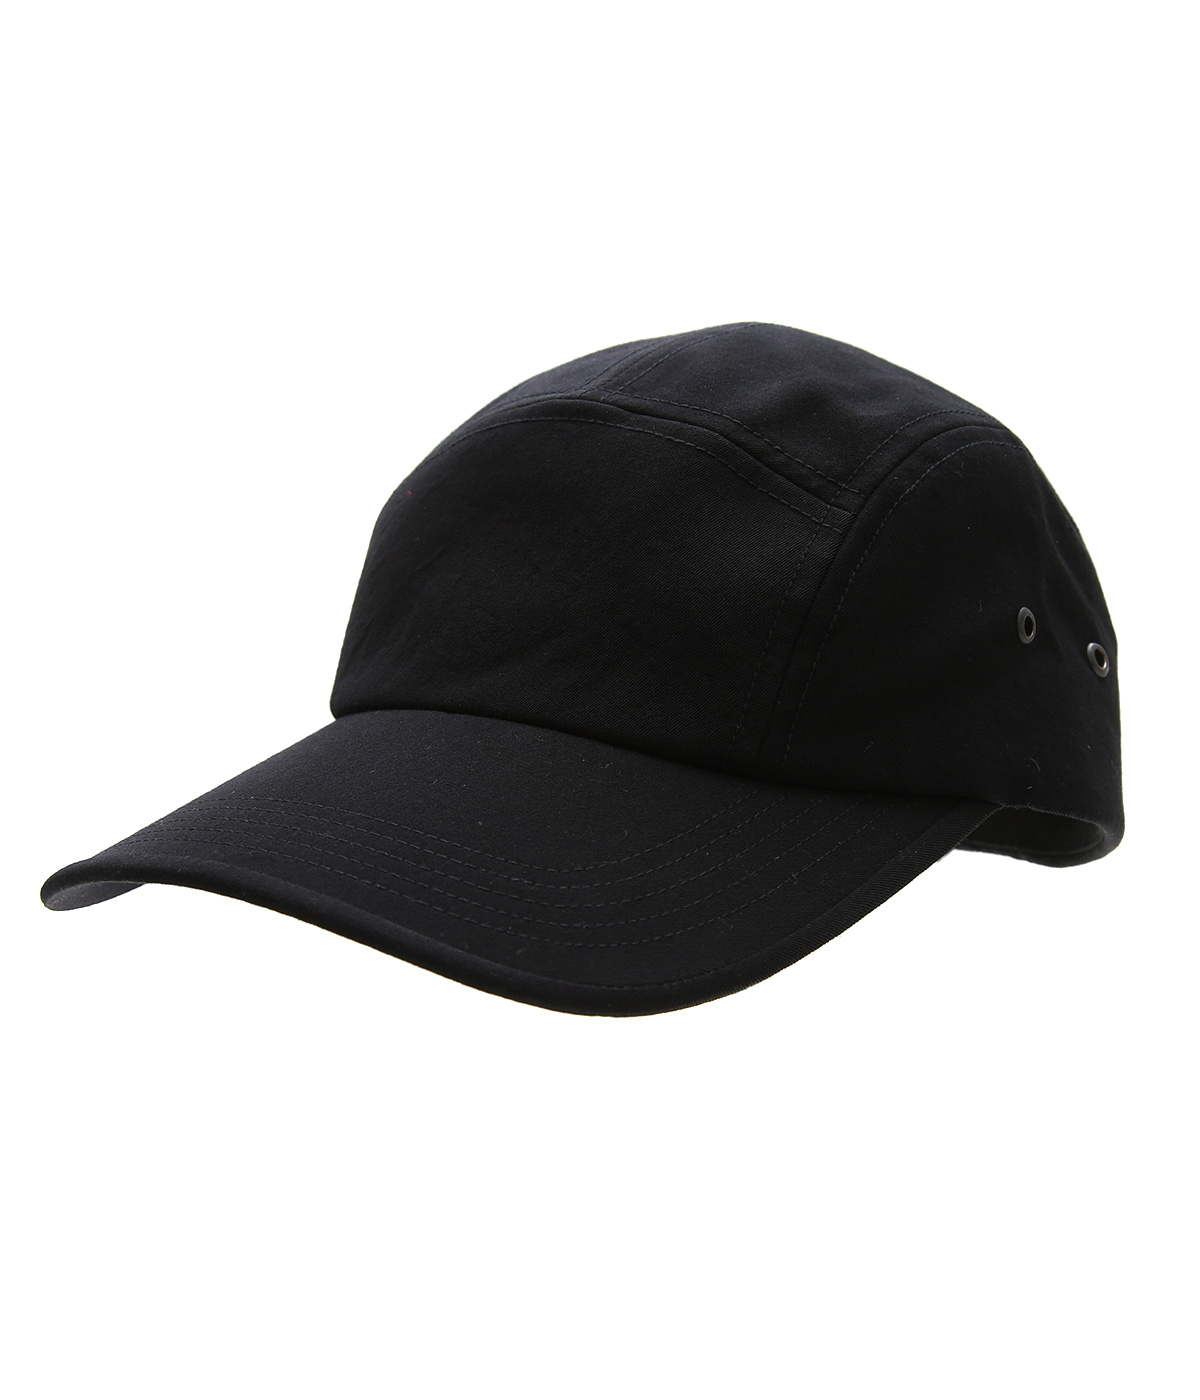 LONG BRIM JET CAP